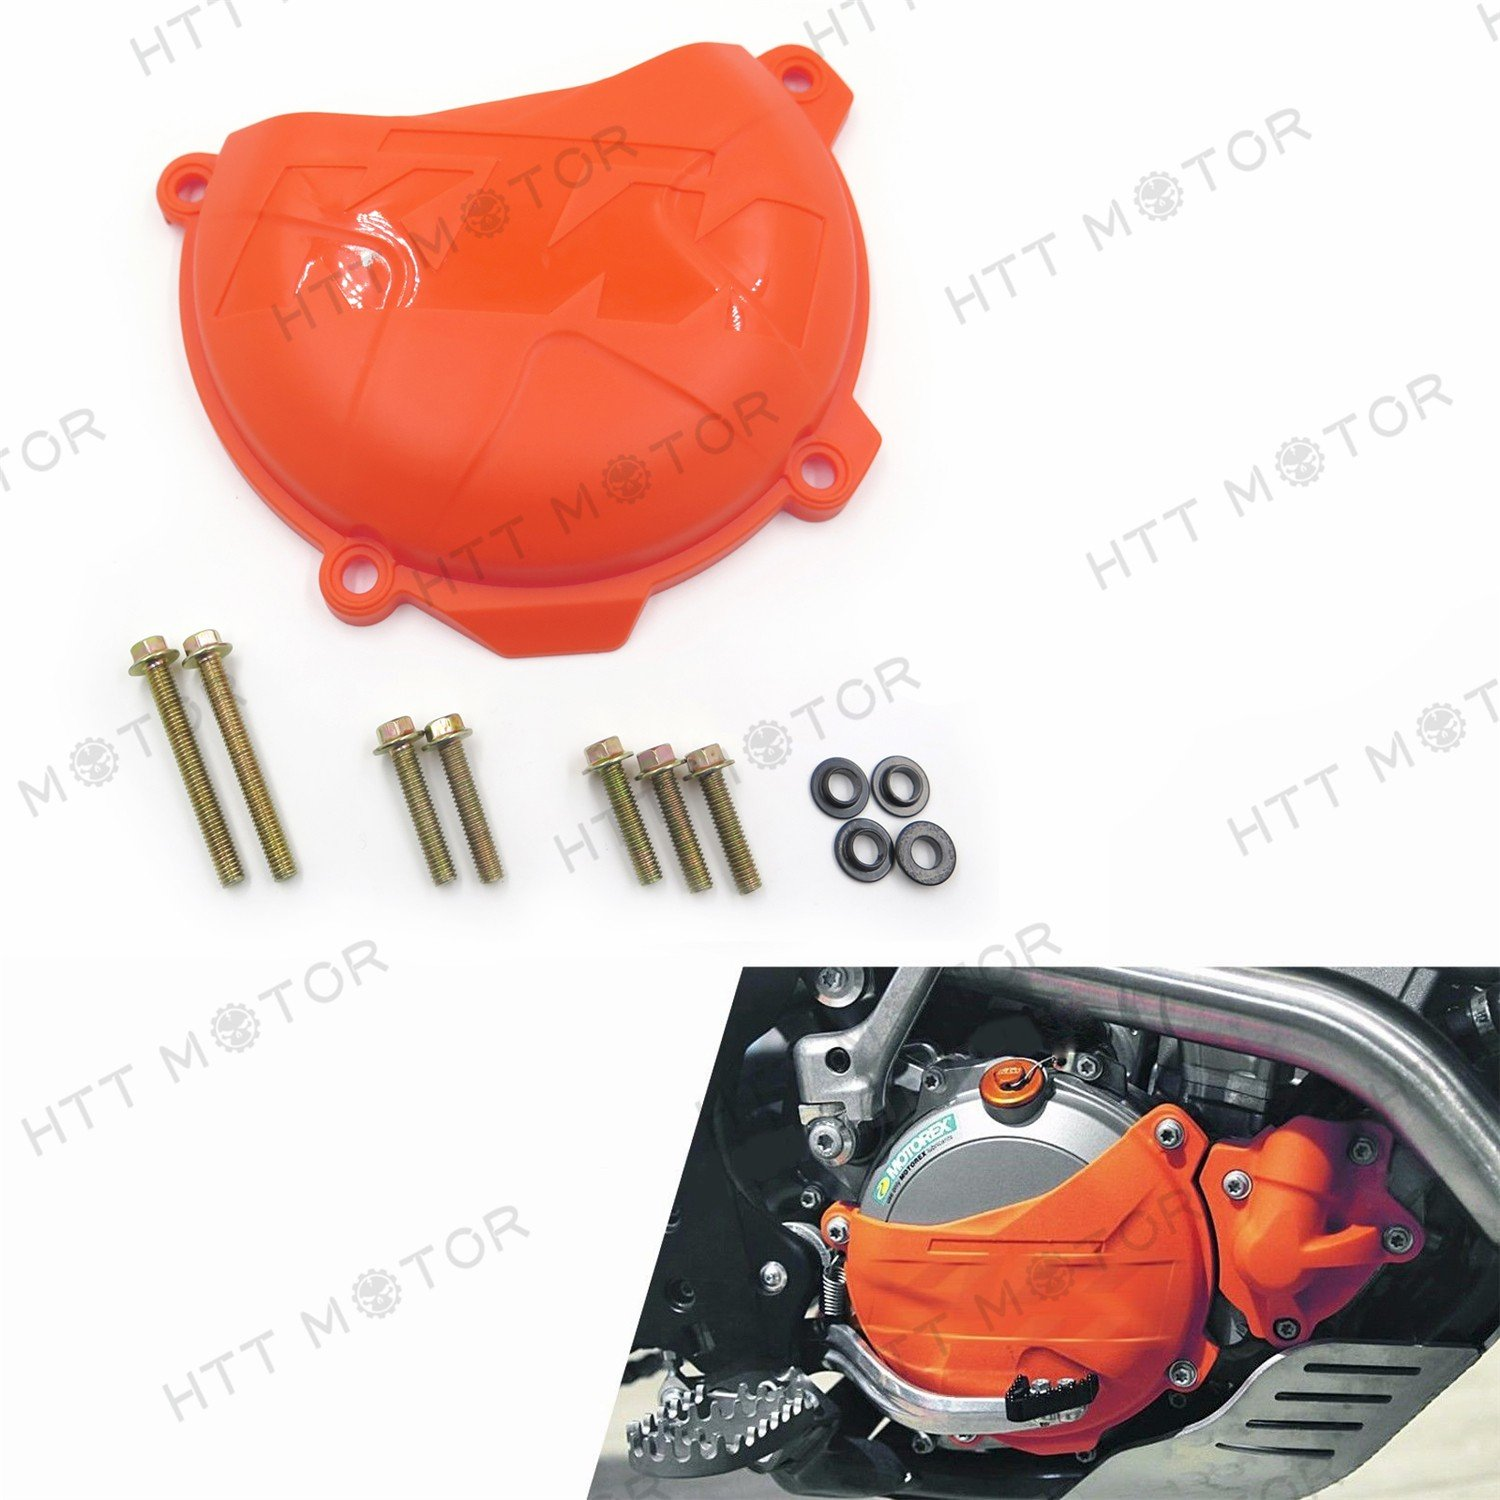 ABS Clutch Cover Guard for KTM 250 350 SX-F XC-F EXC-F/6 DAYS XCF-W 2014-2016 HTTMT